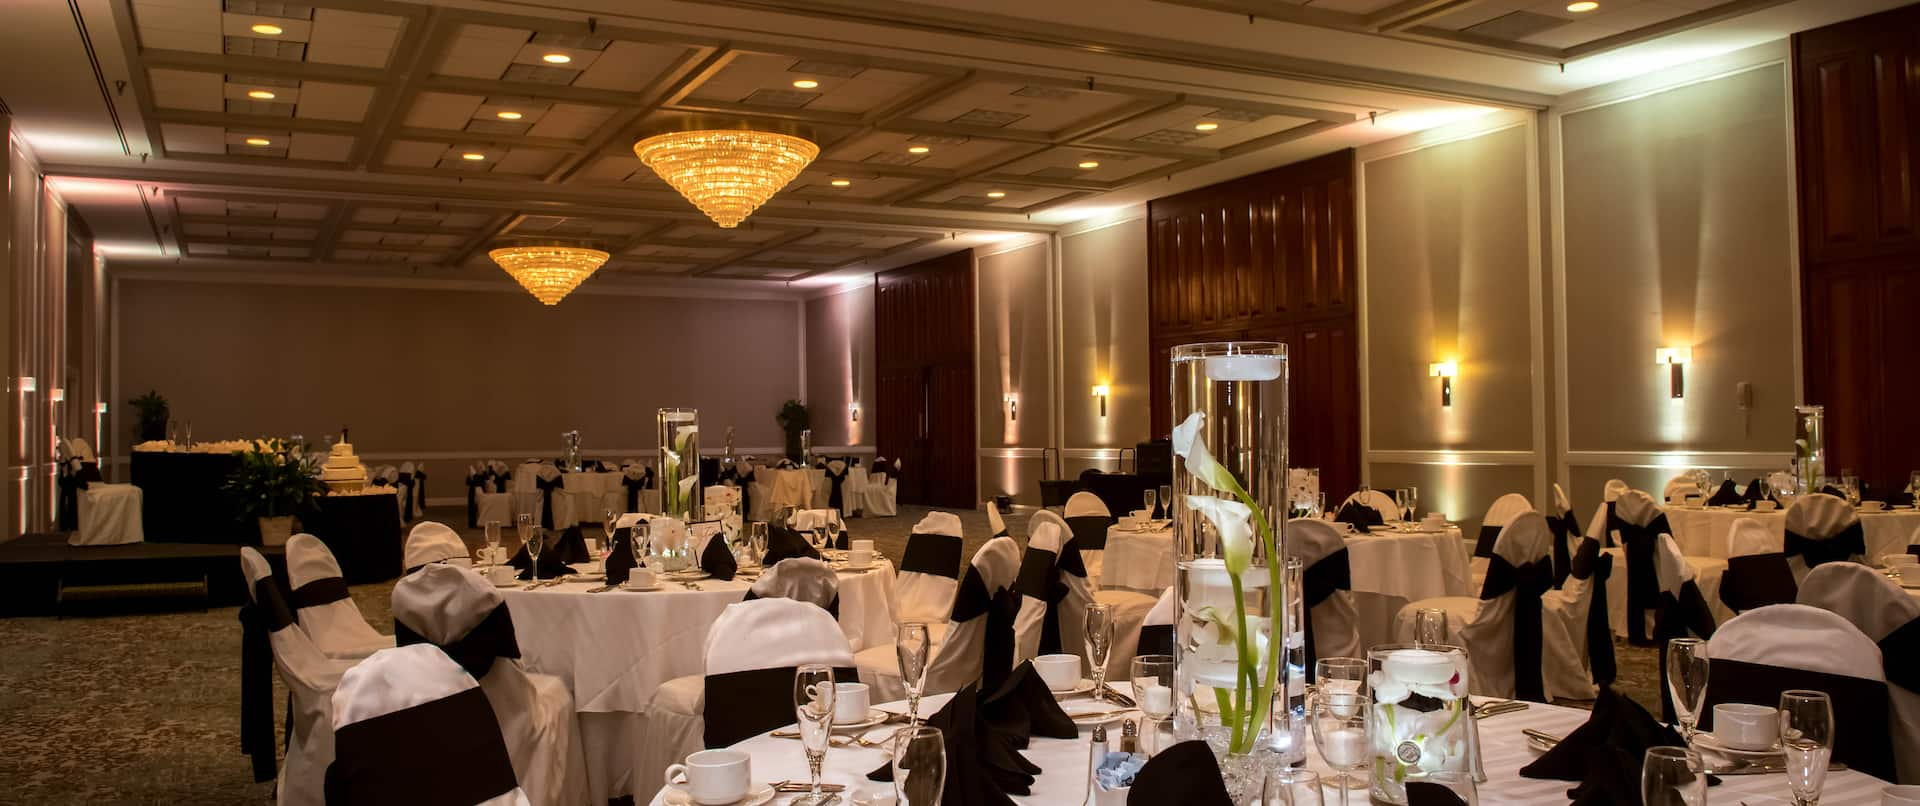 Flowers in Water With Floating Candles, Place Settings, and Black Napkins on Tables With White Linens, and White Chairs With Black Bows in Ballroom Set Up for Wedding